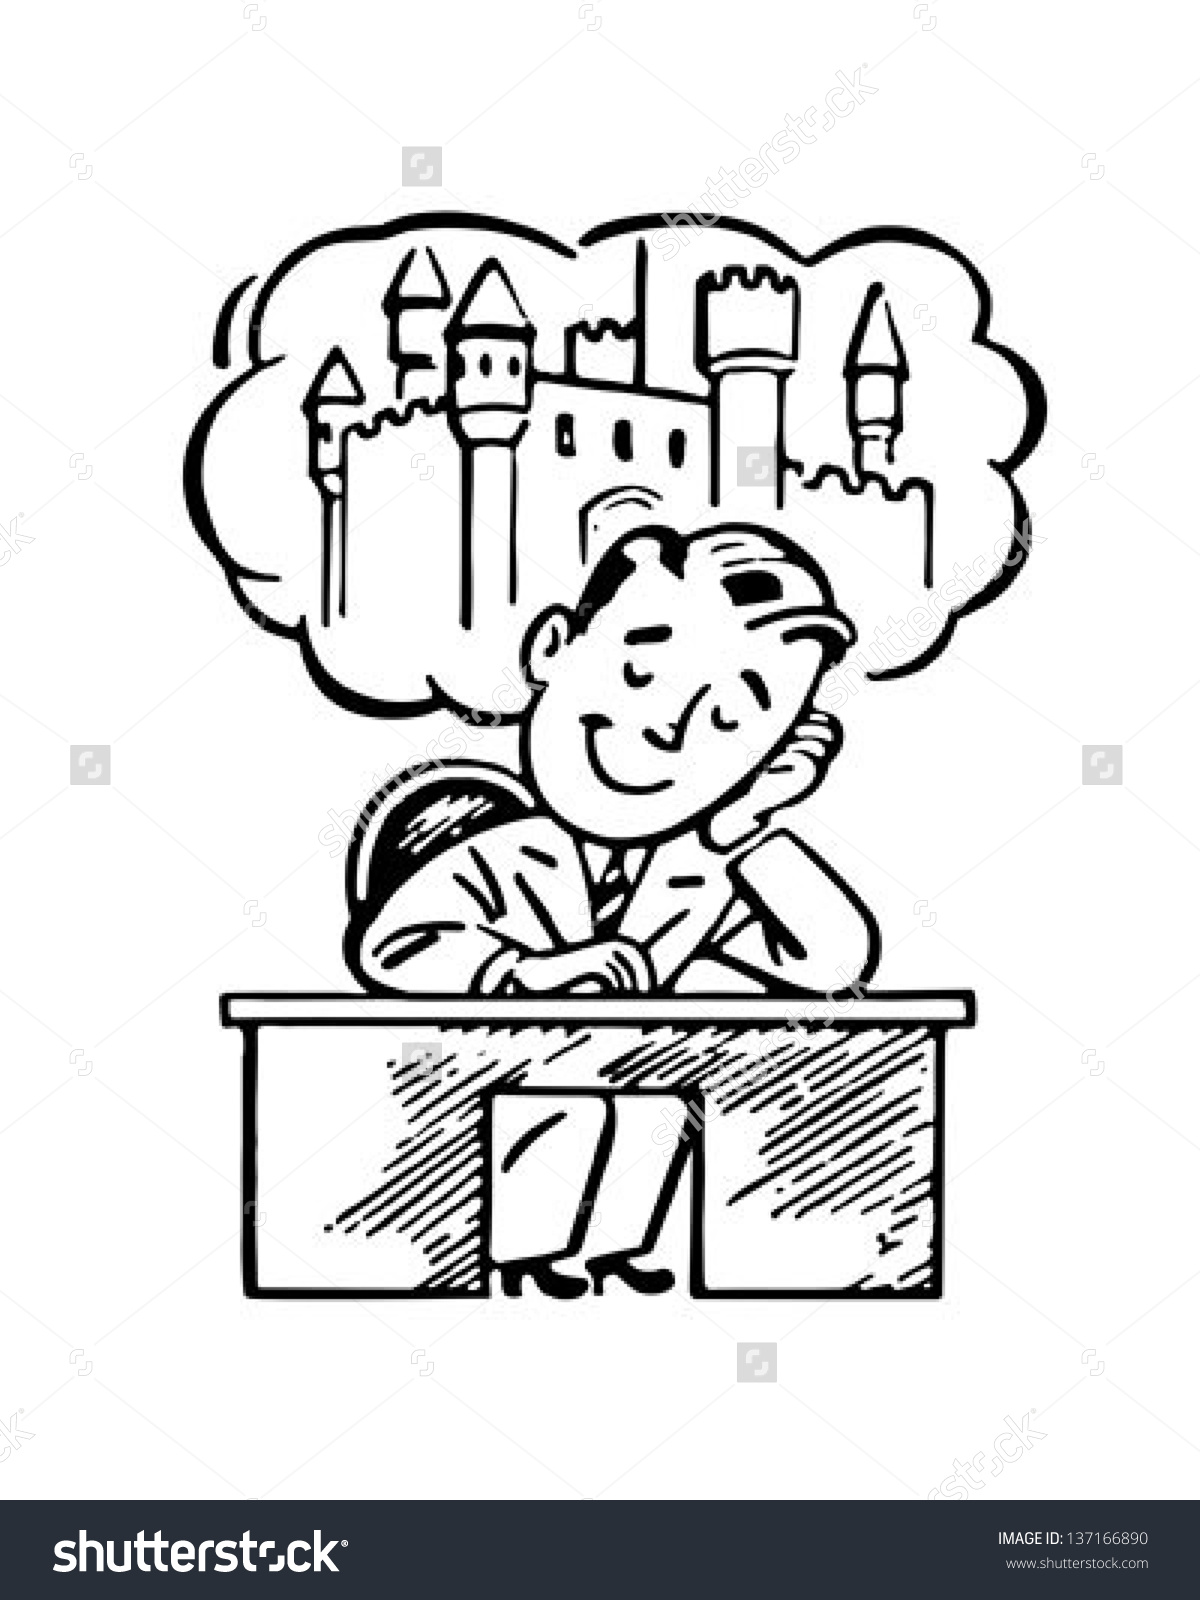 Person Day Dreaming Clipart.